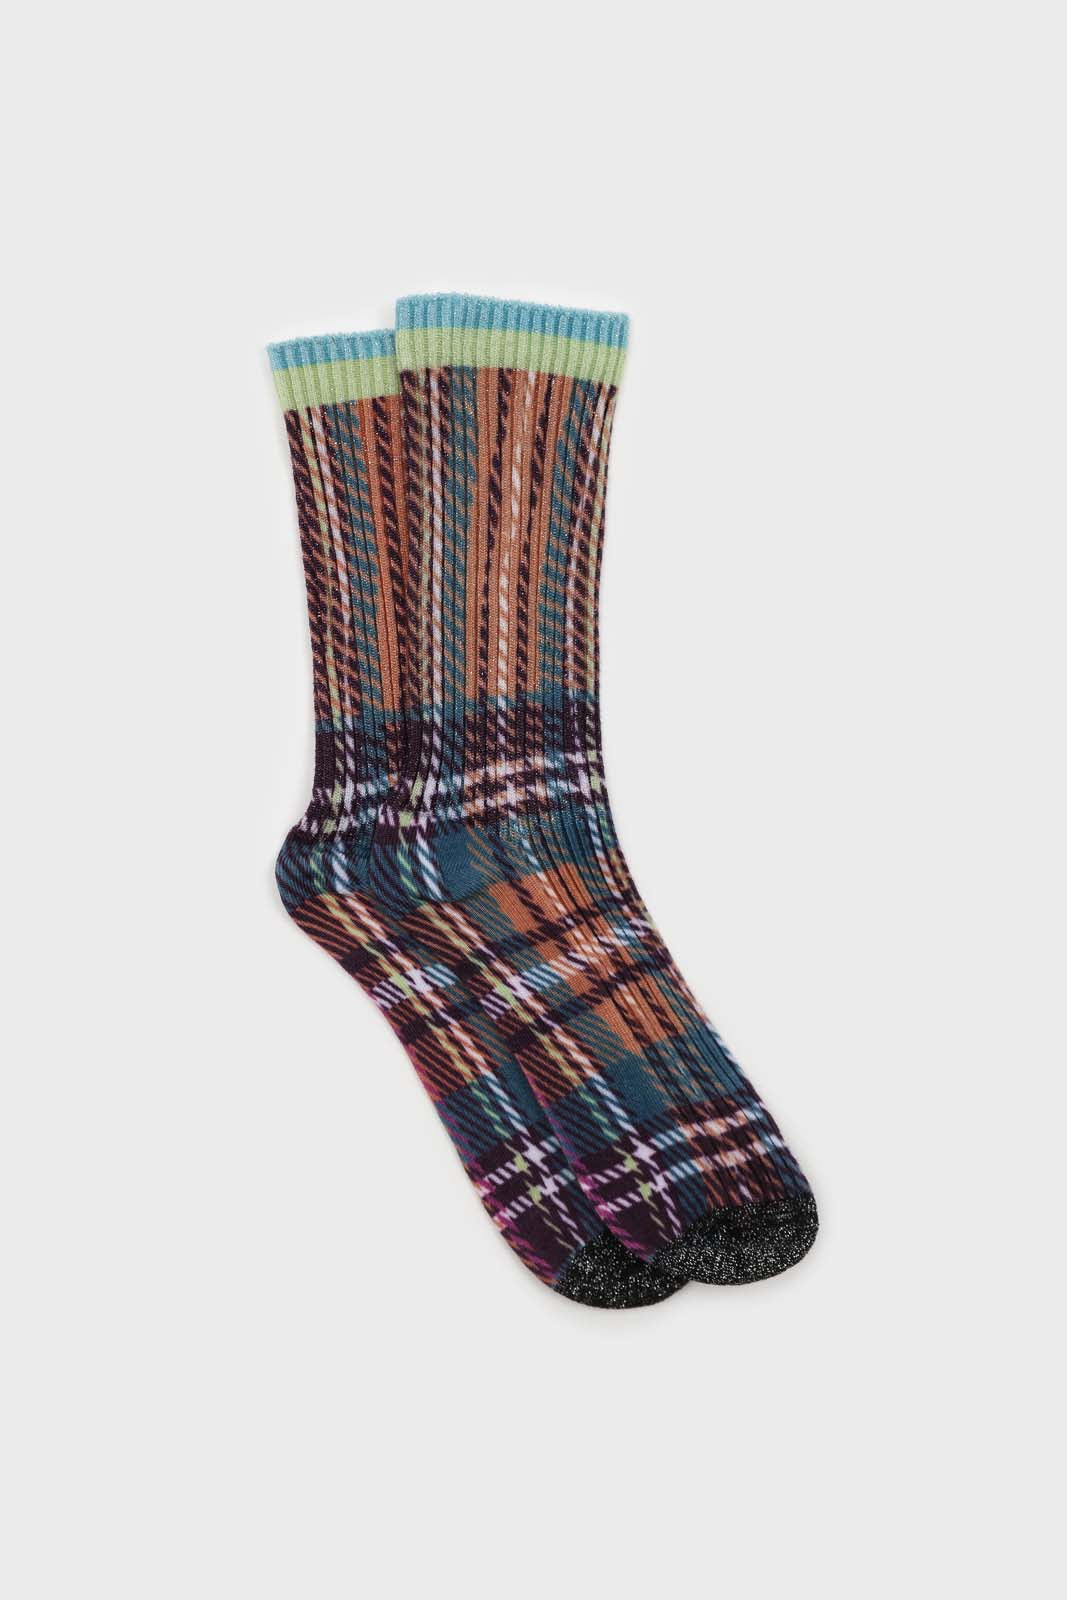 Light blue and purple metallic checked socks1sx